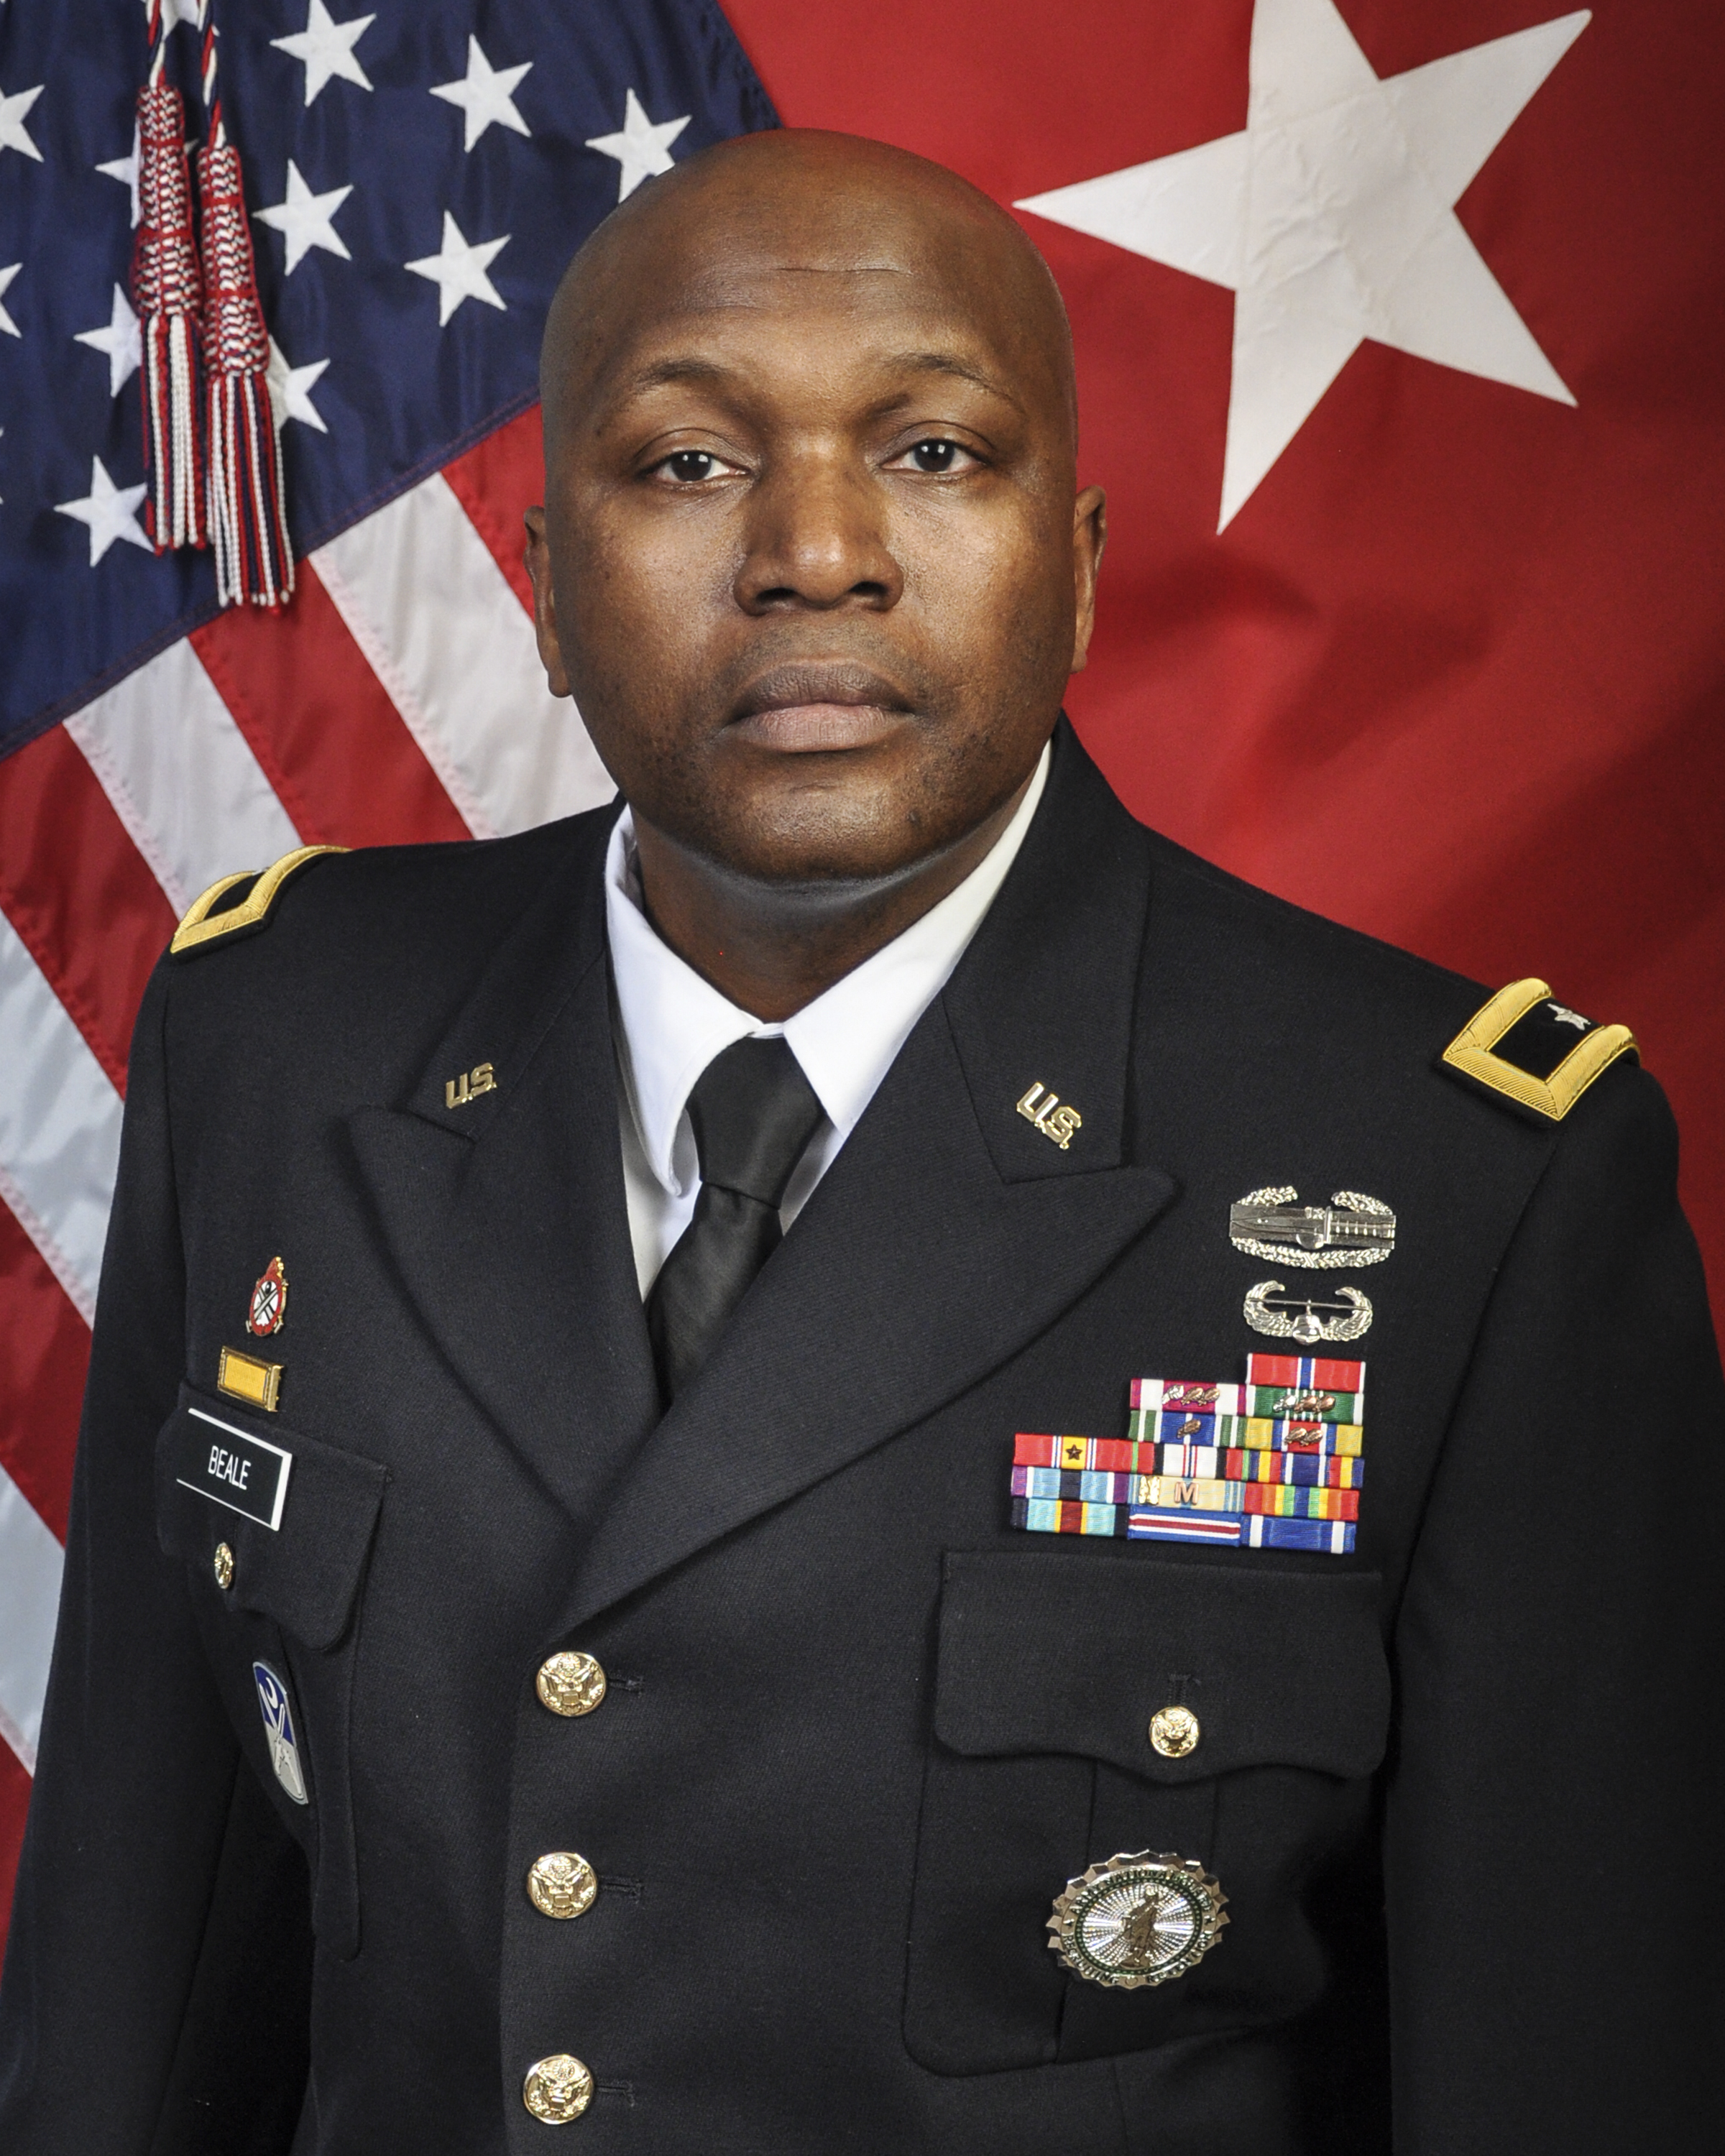 Brigadier General Jemal J. Beale was sworn in as The Adjutant General of  New Jersey on April 2, 2018. Brigadier General Beale commands the more than  8,400